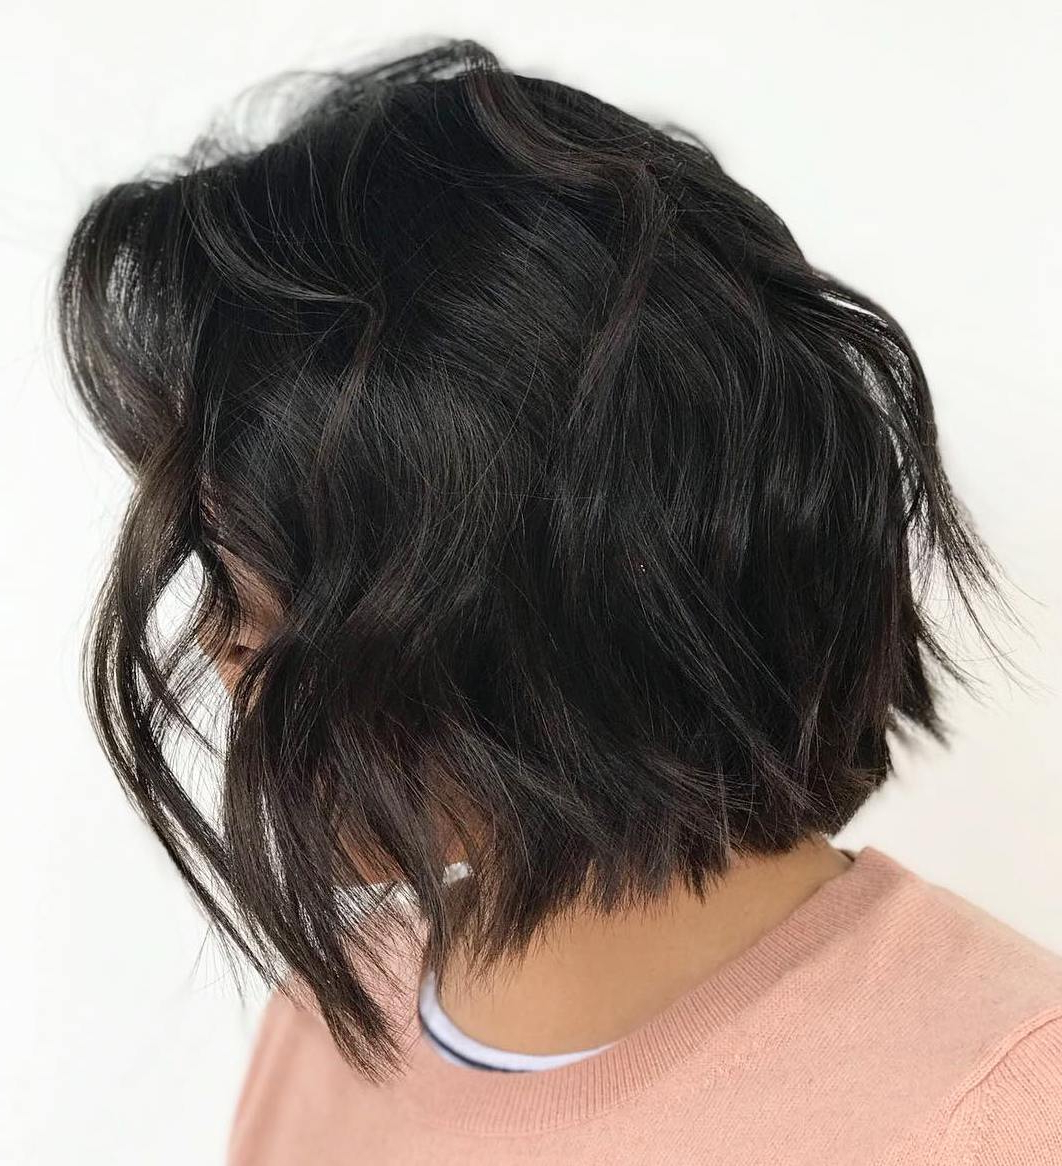 2017 Feathered Golden Brown Bob Hairstyles With Find Your Best Bob Haircut For (View 11 of 20)